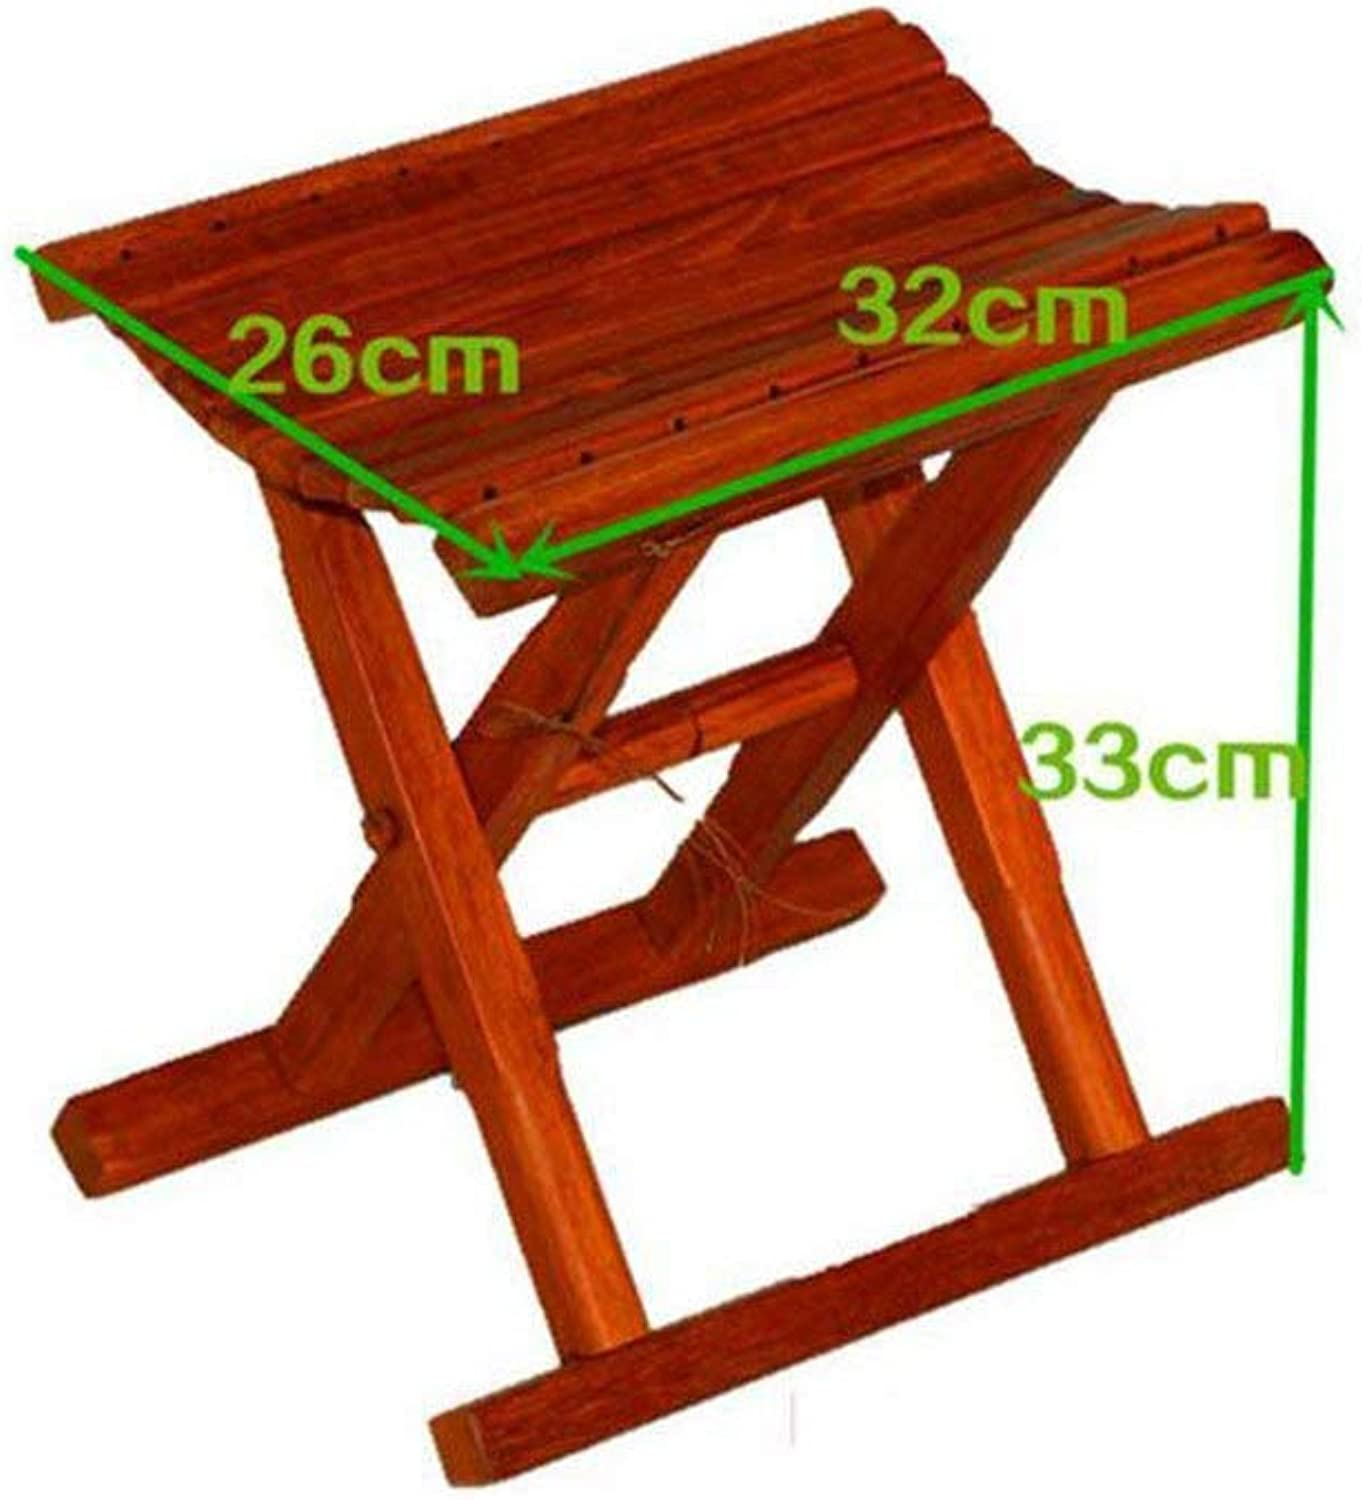 XHHWZB Step Stool - Wood Folding Kids & Adults Kitchen Portable Wooden Small Foot Stool Footstool shoes Bench